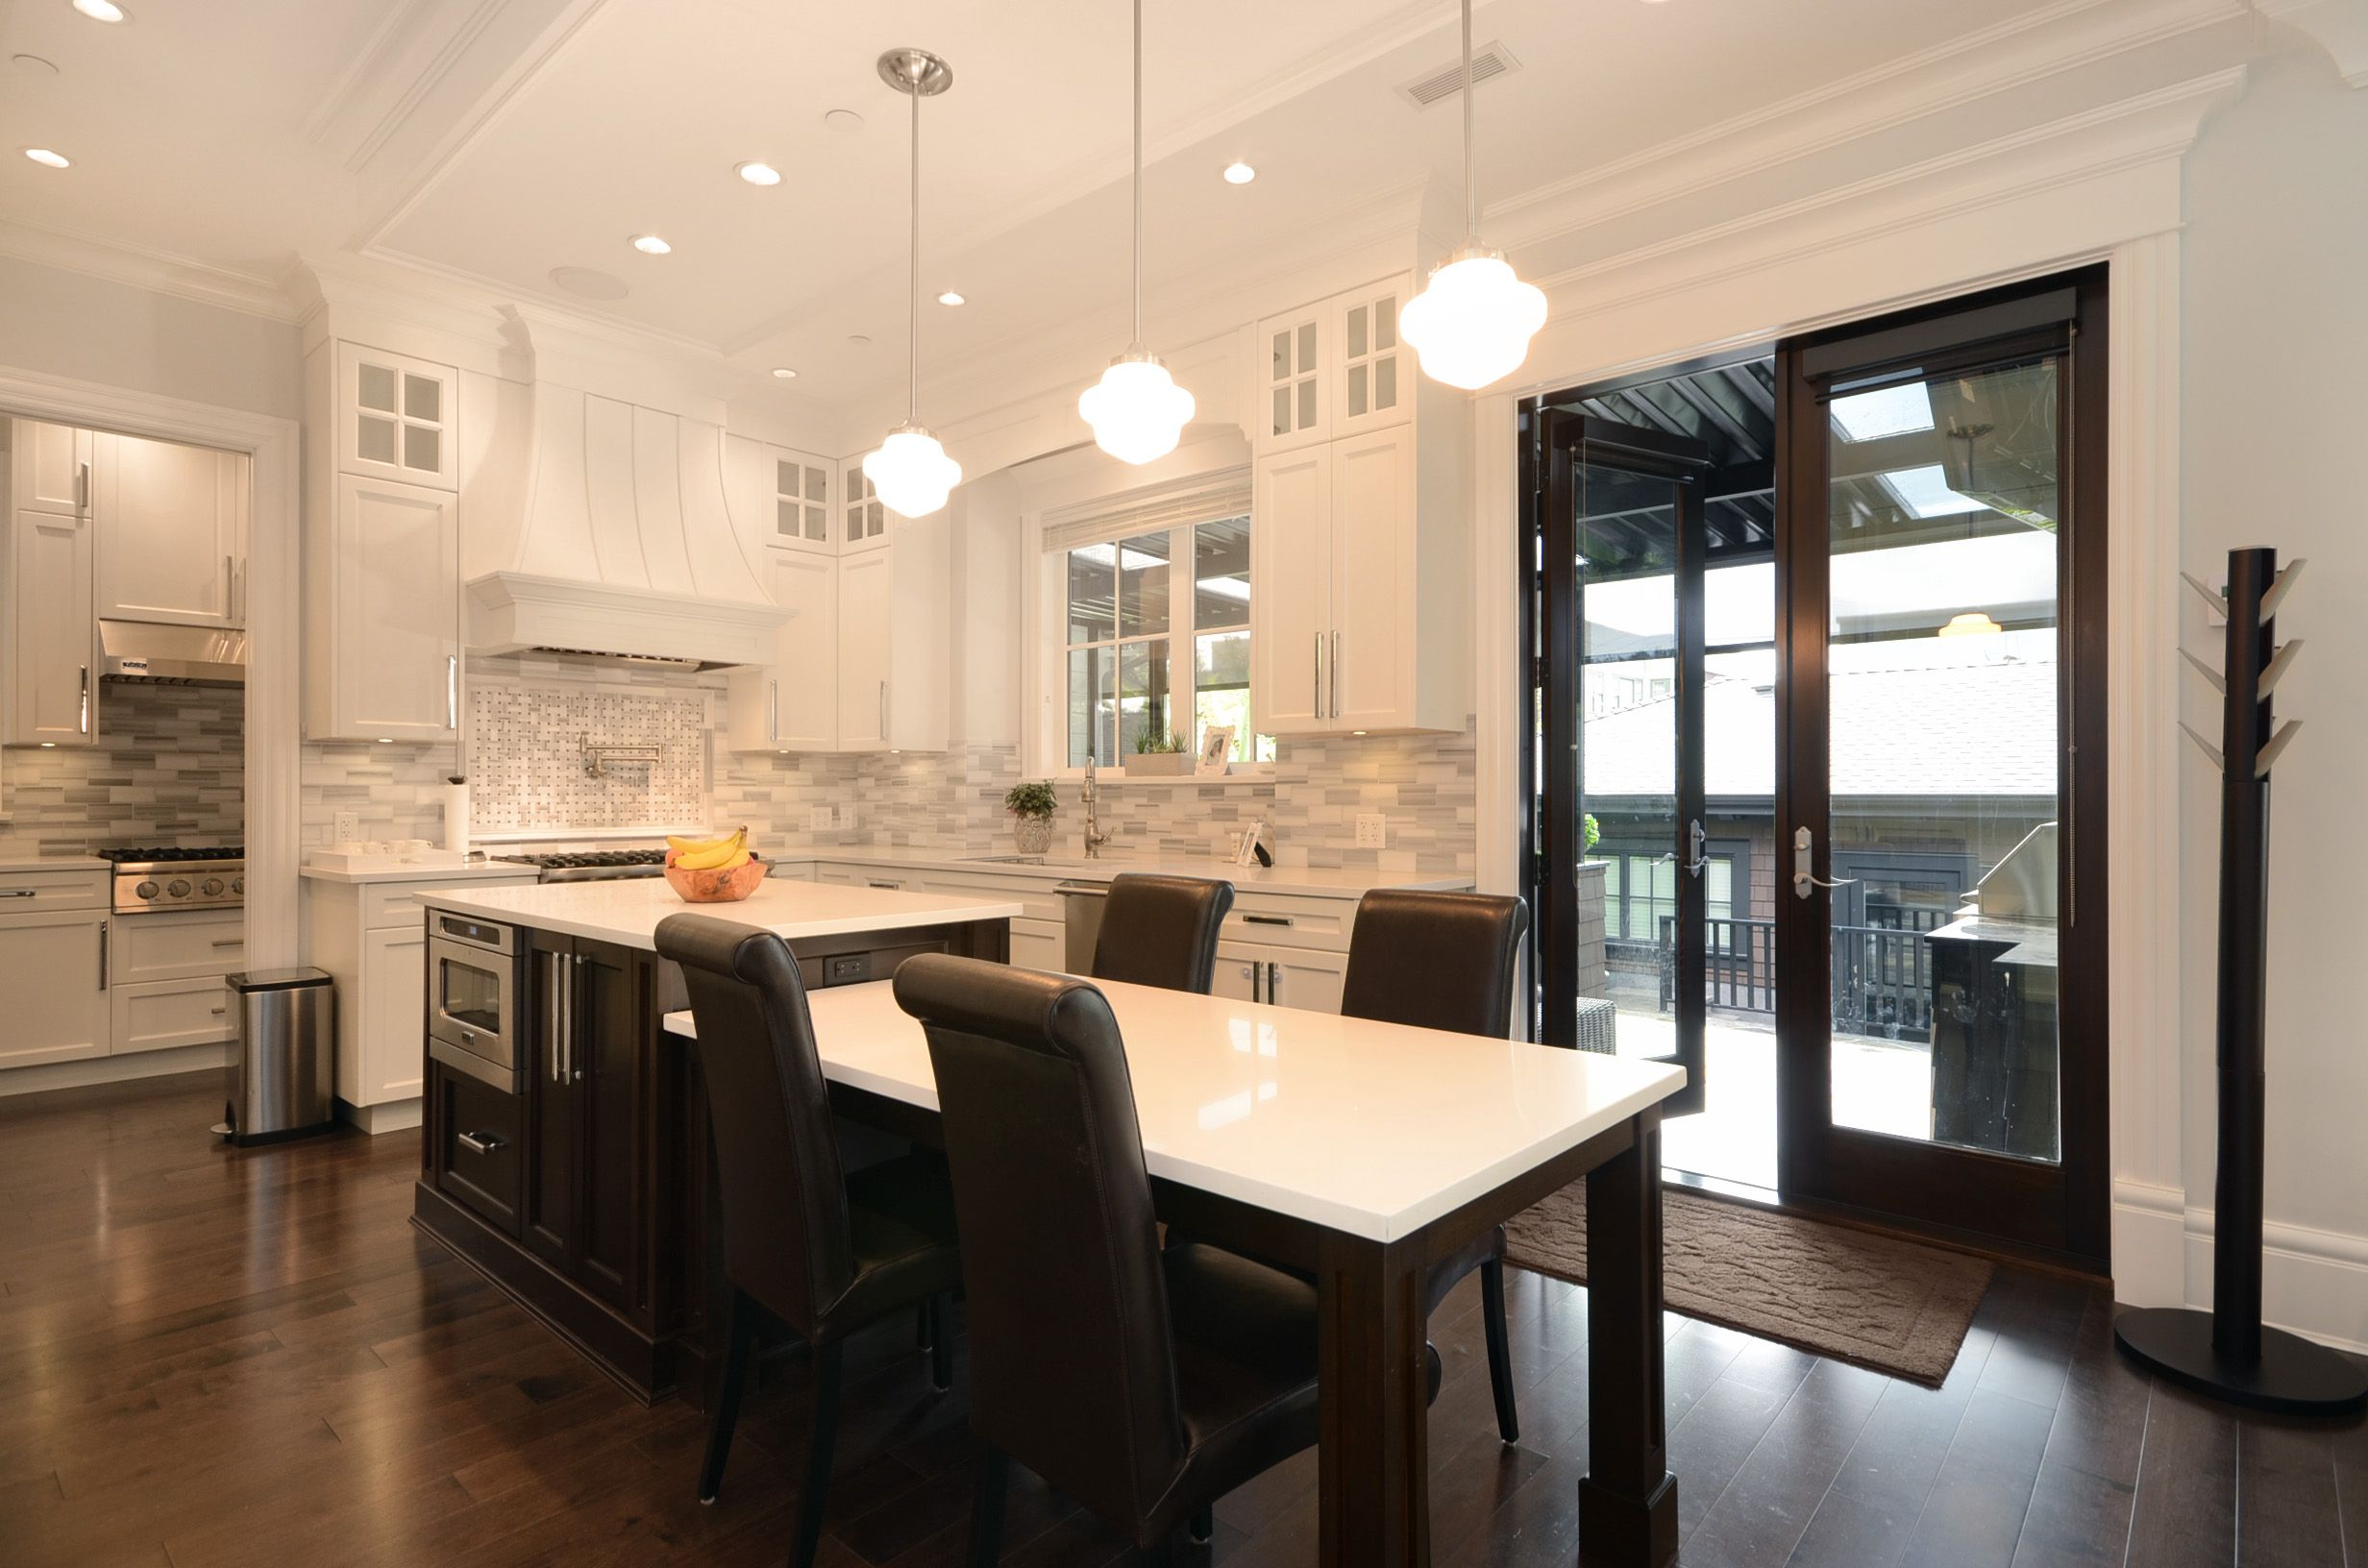 Kitchen design, island table, craftsman style, transitional, Vancouver, B.C. West 3rd | Arden Interiors